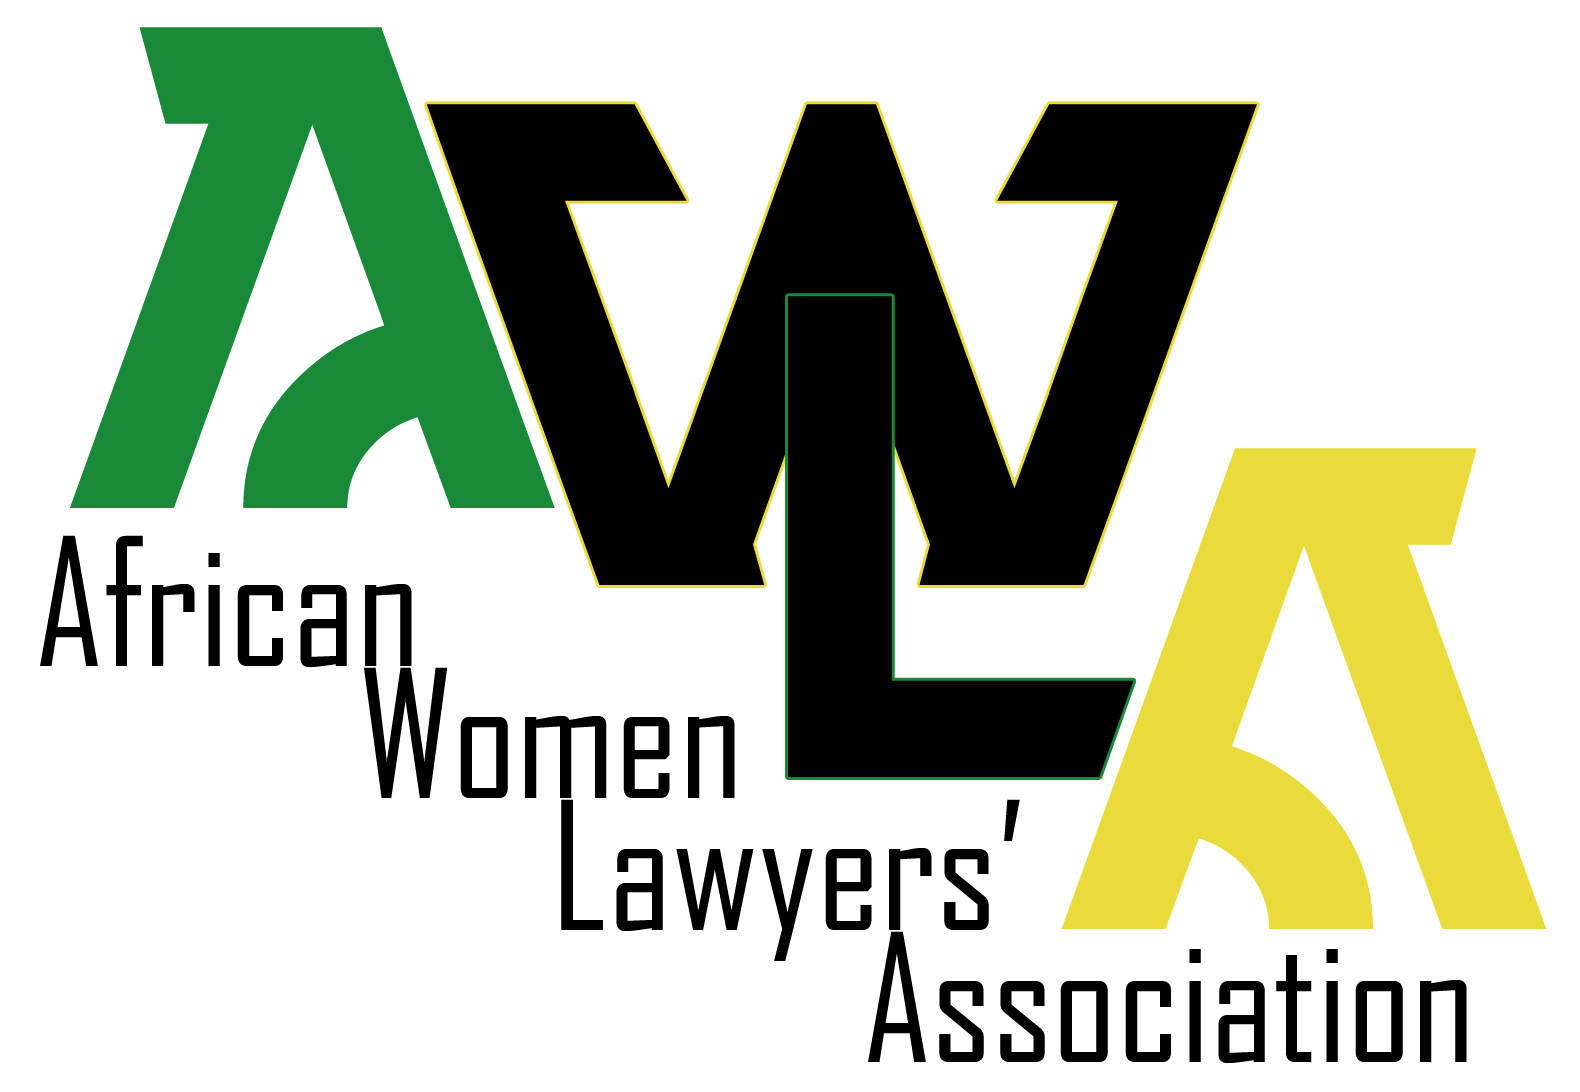 African Women Lawyers Association (AWLA)